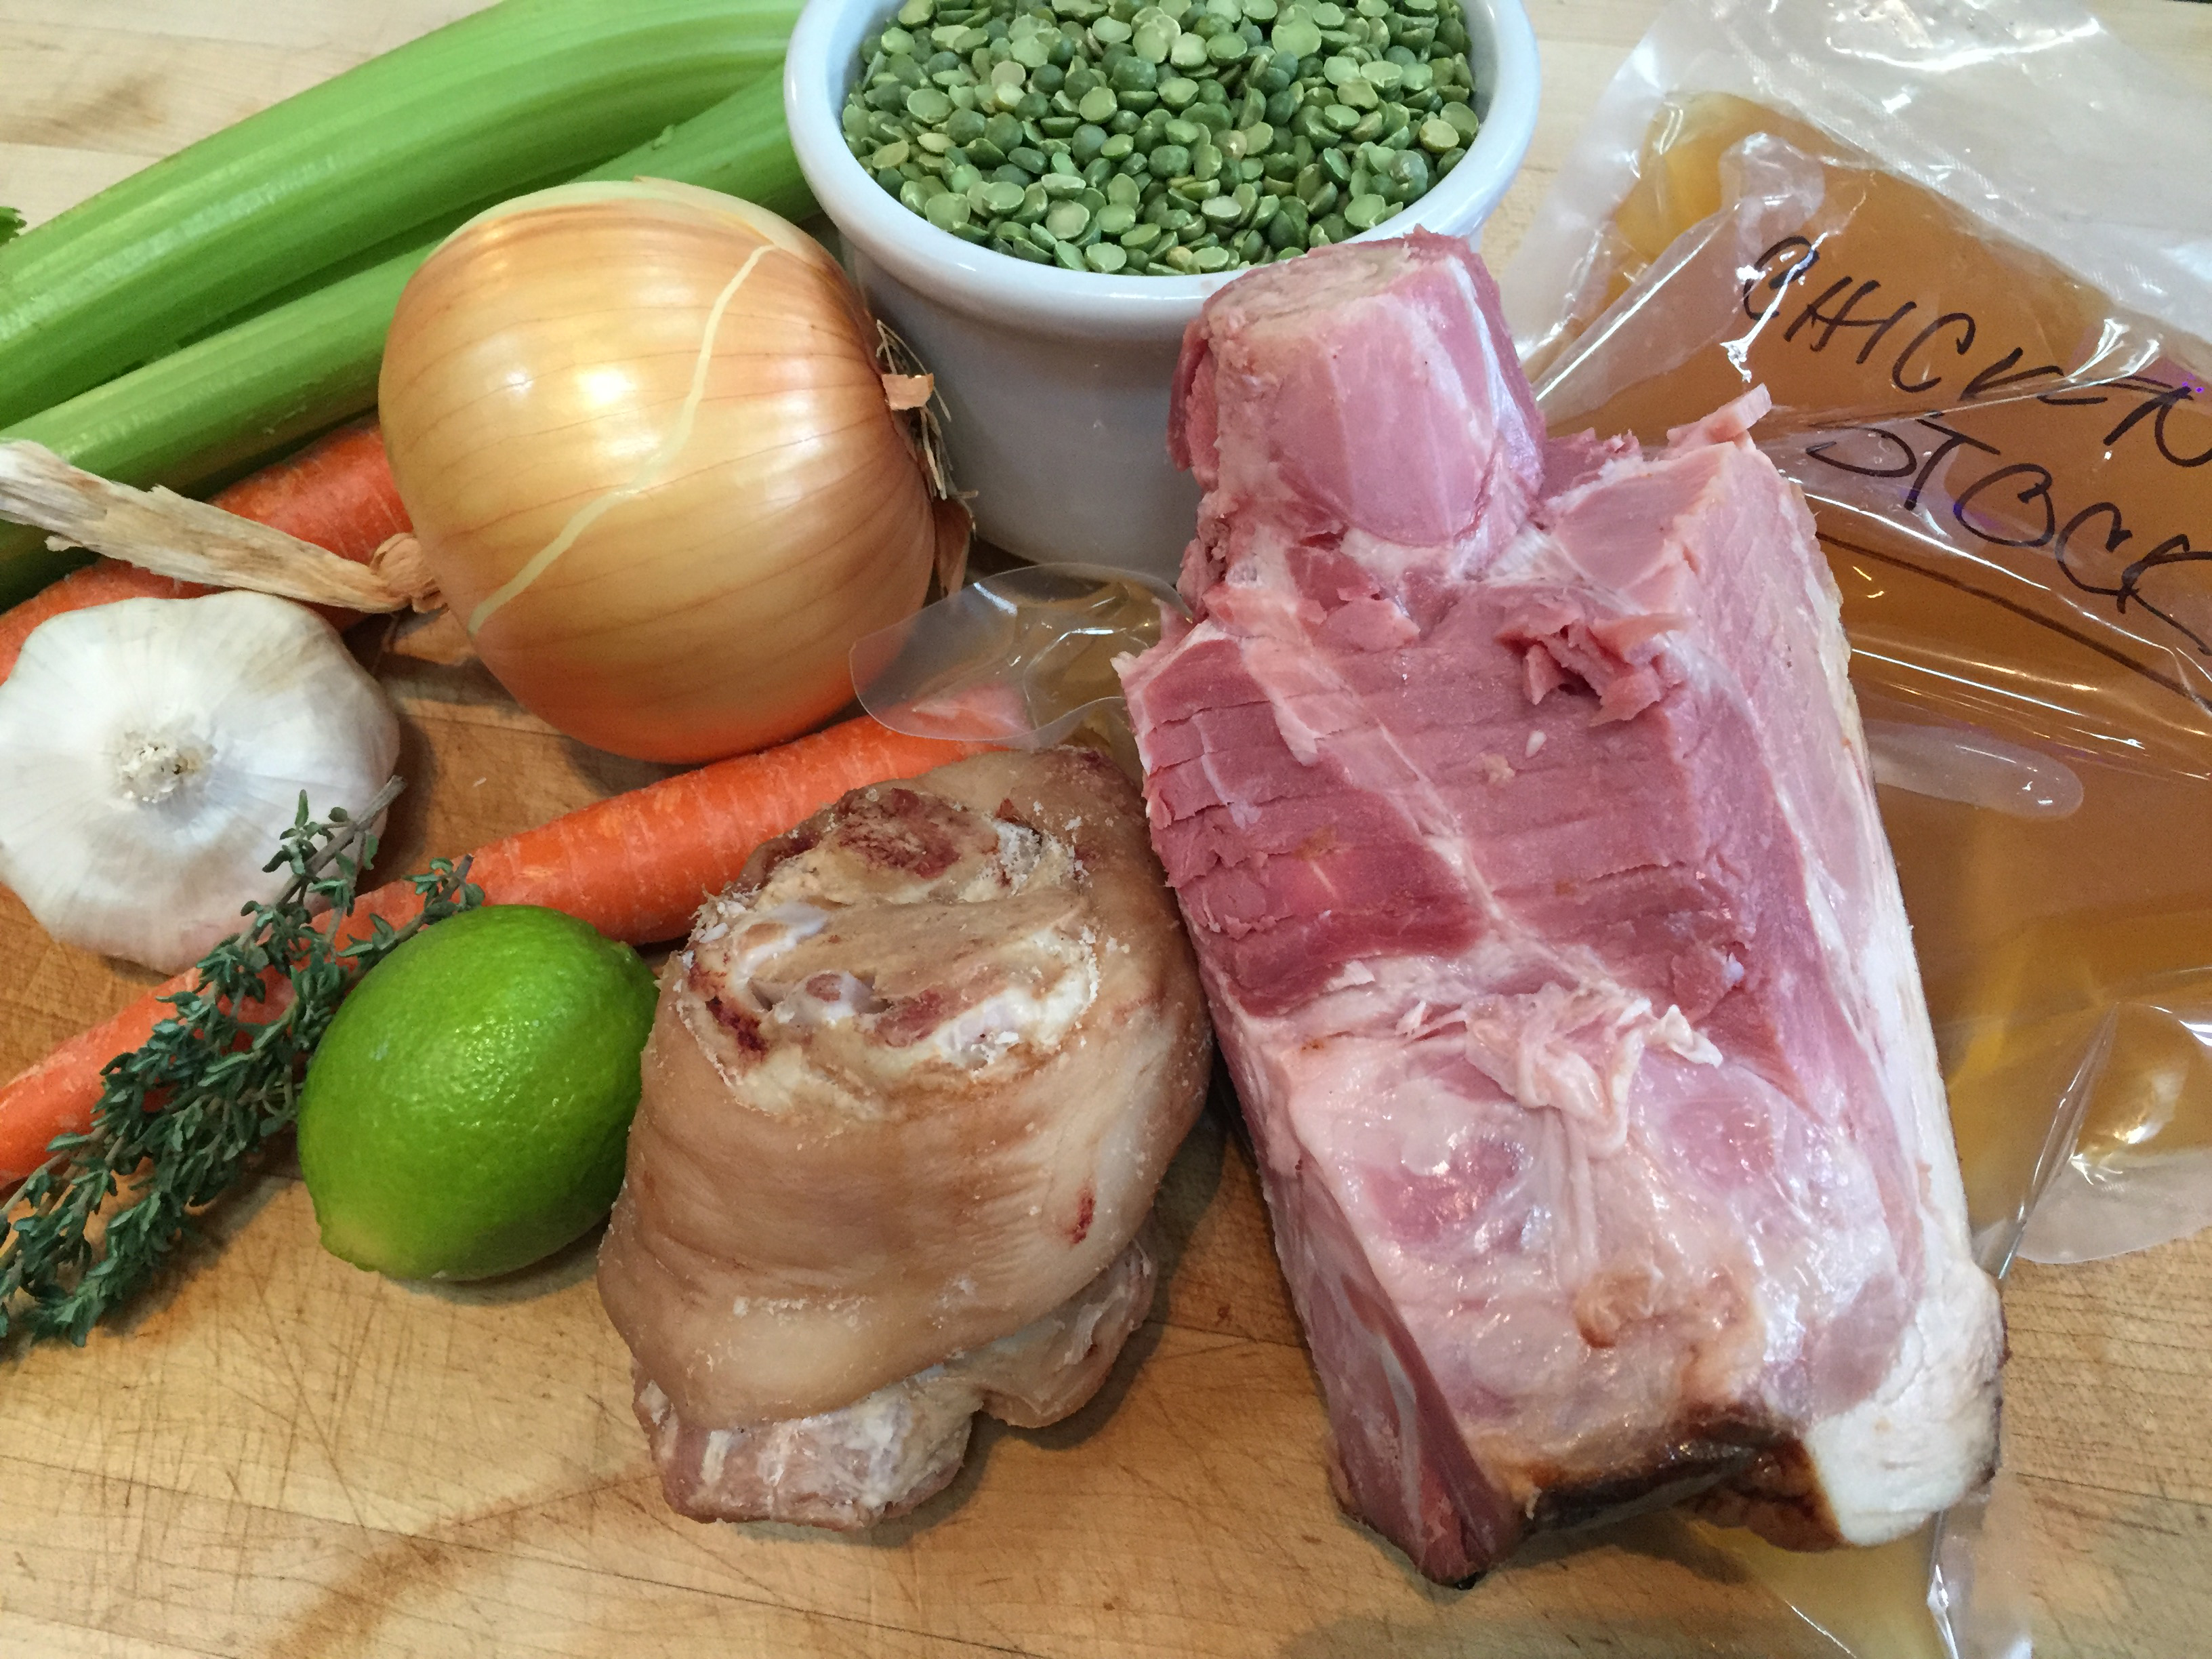 Split pea soup ingredients